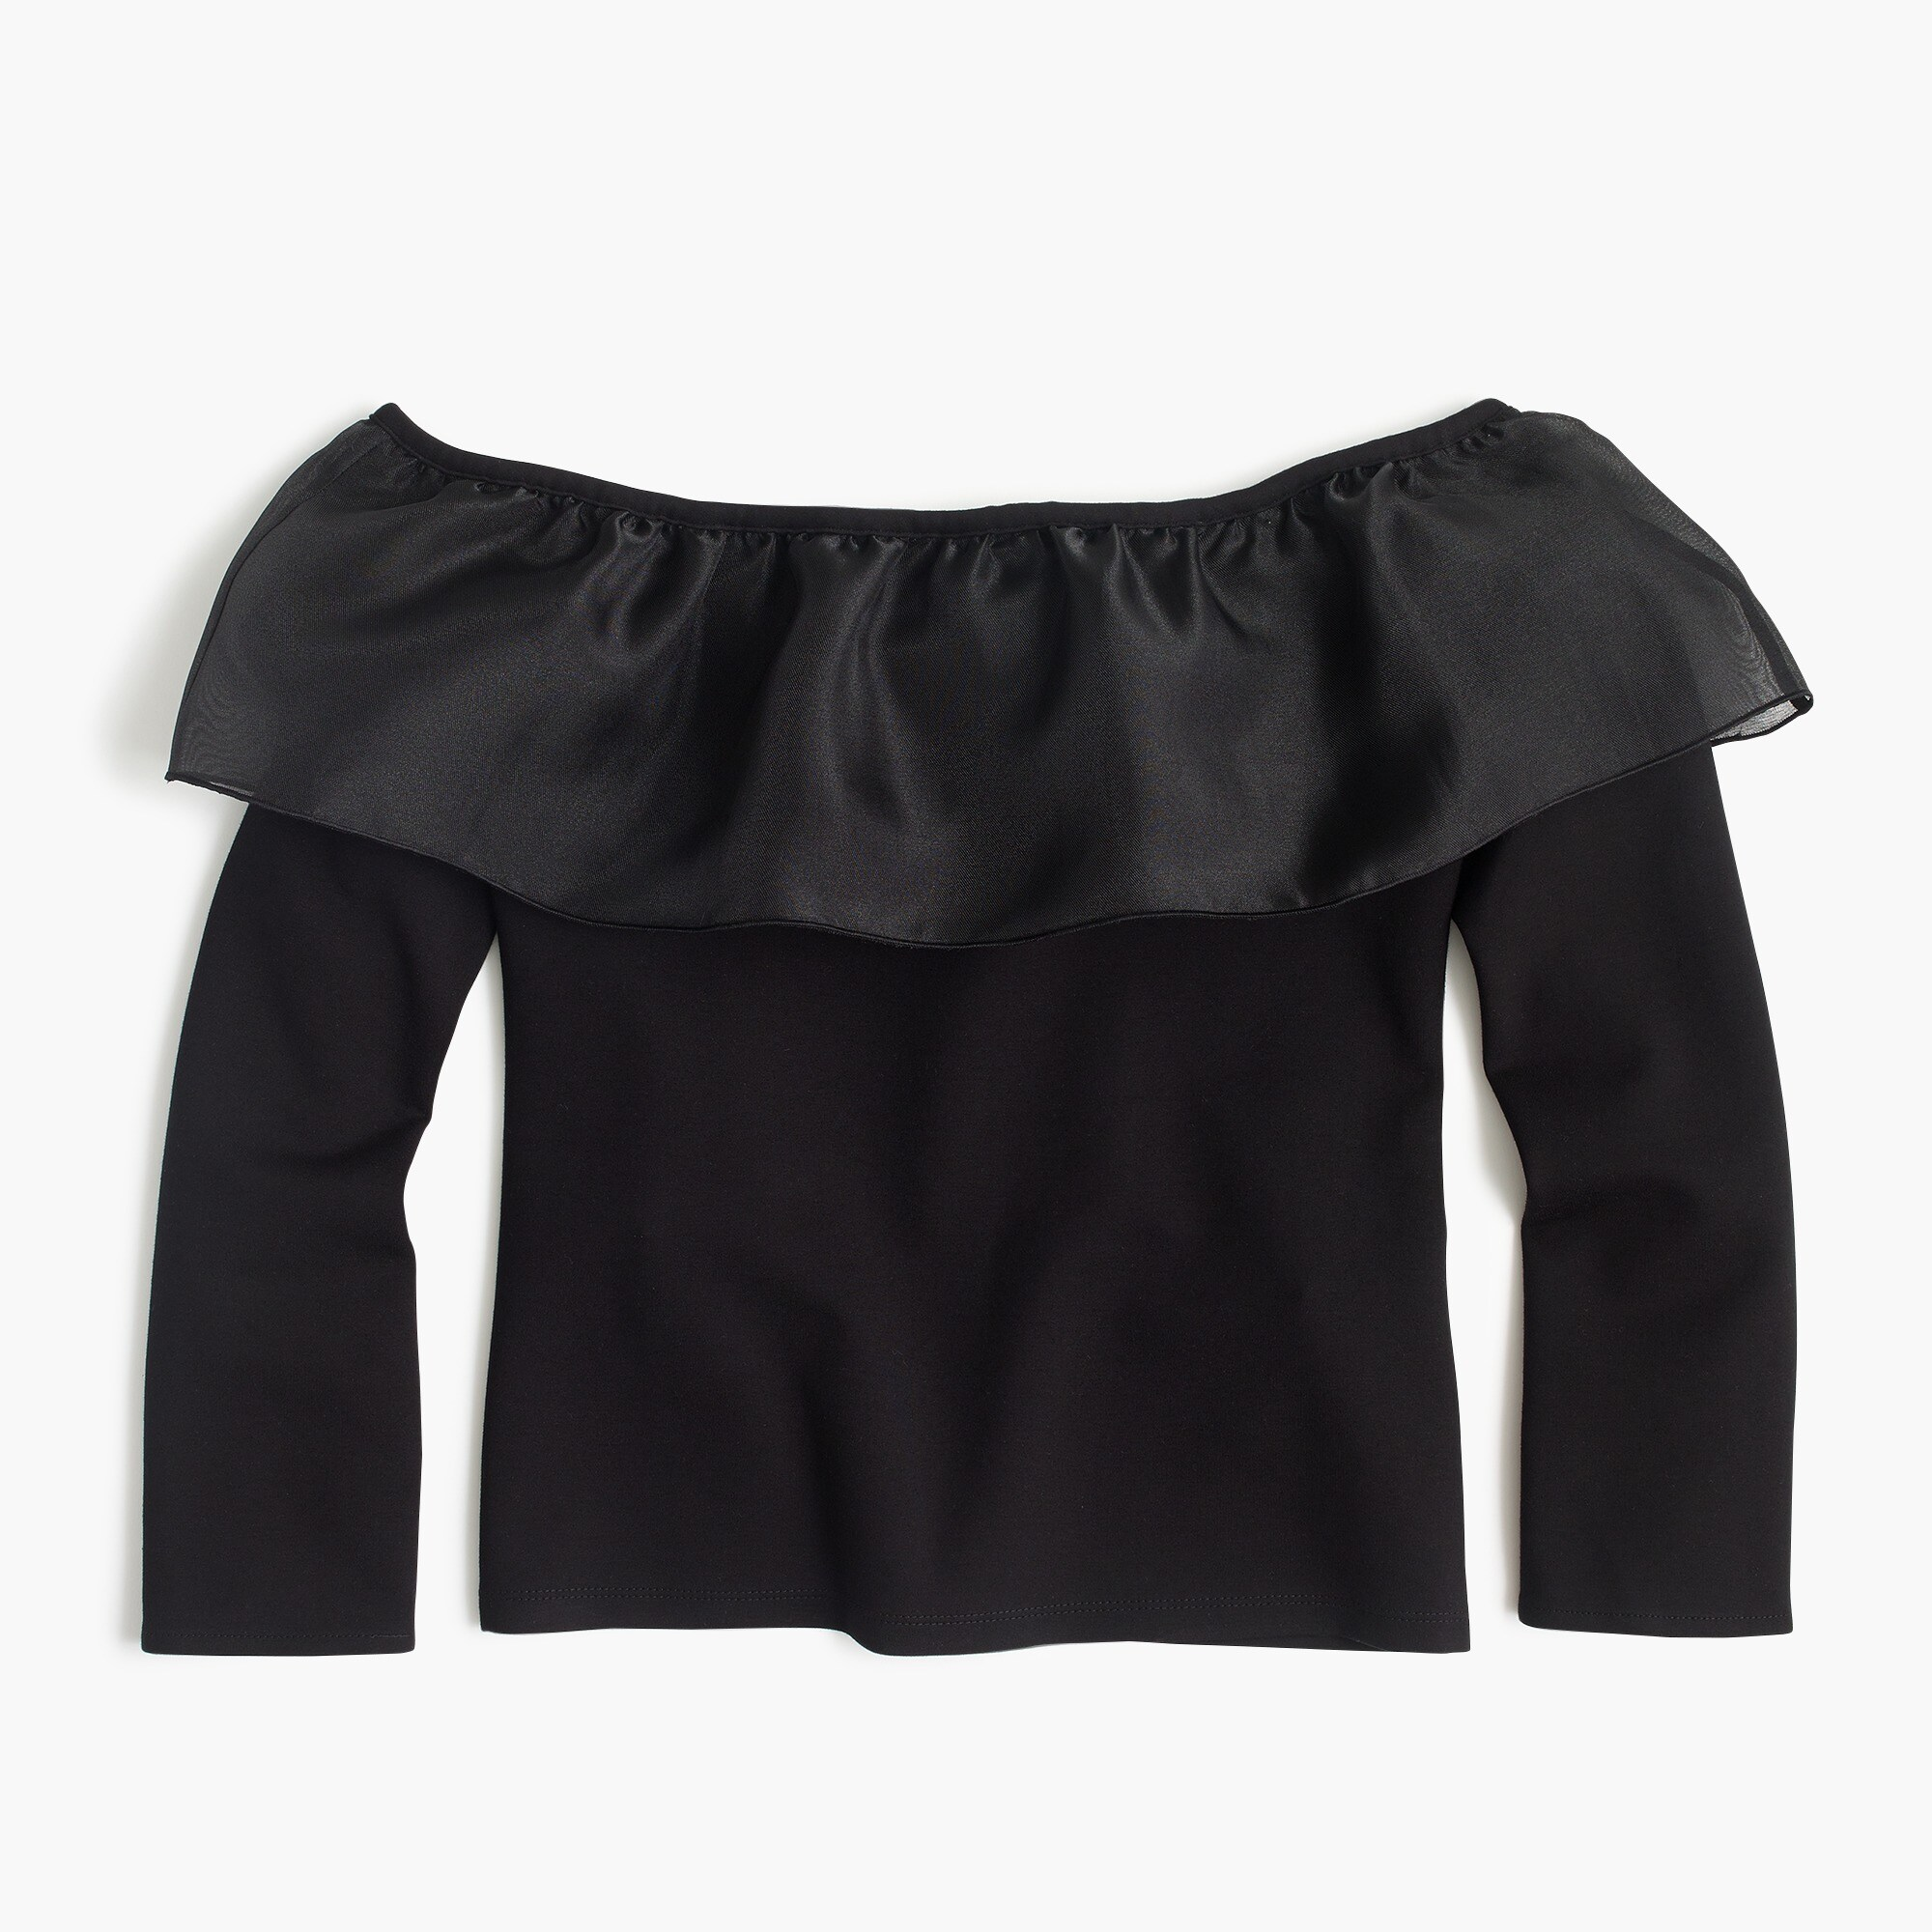 organza ruffle top : women long sleeve